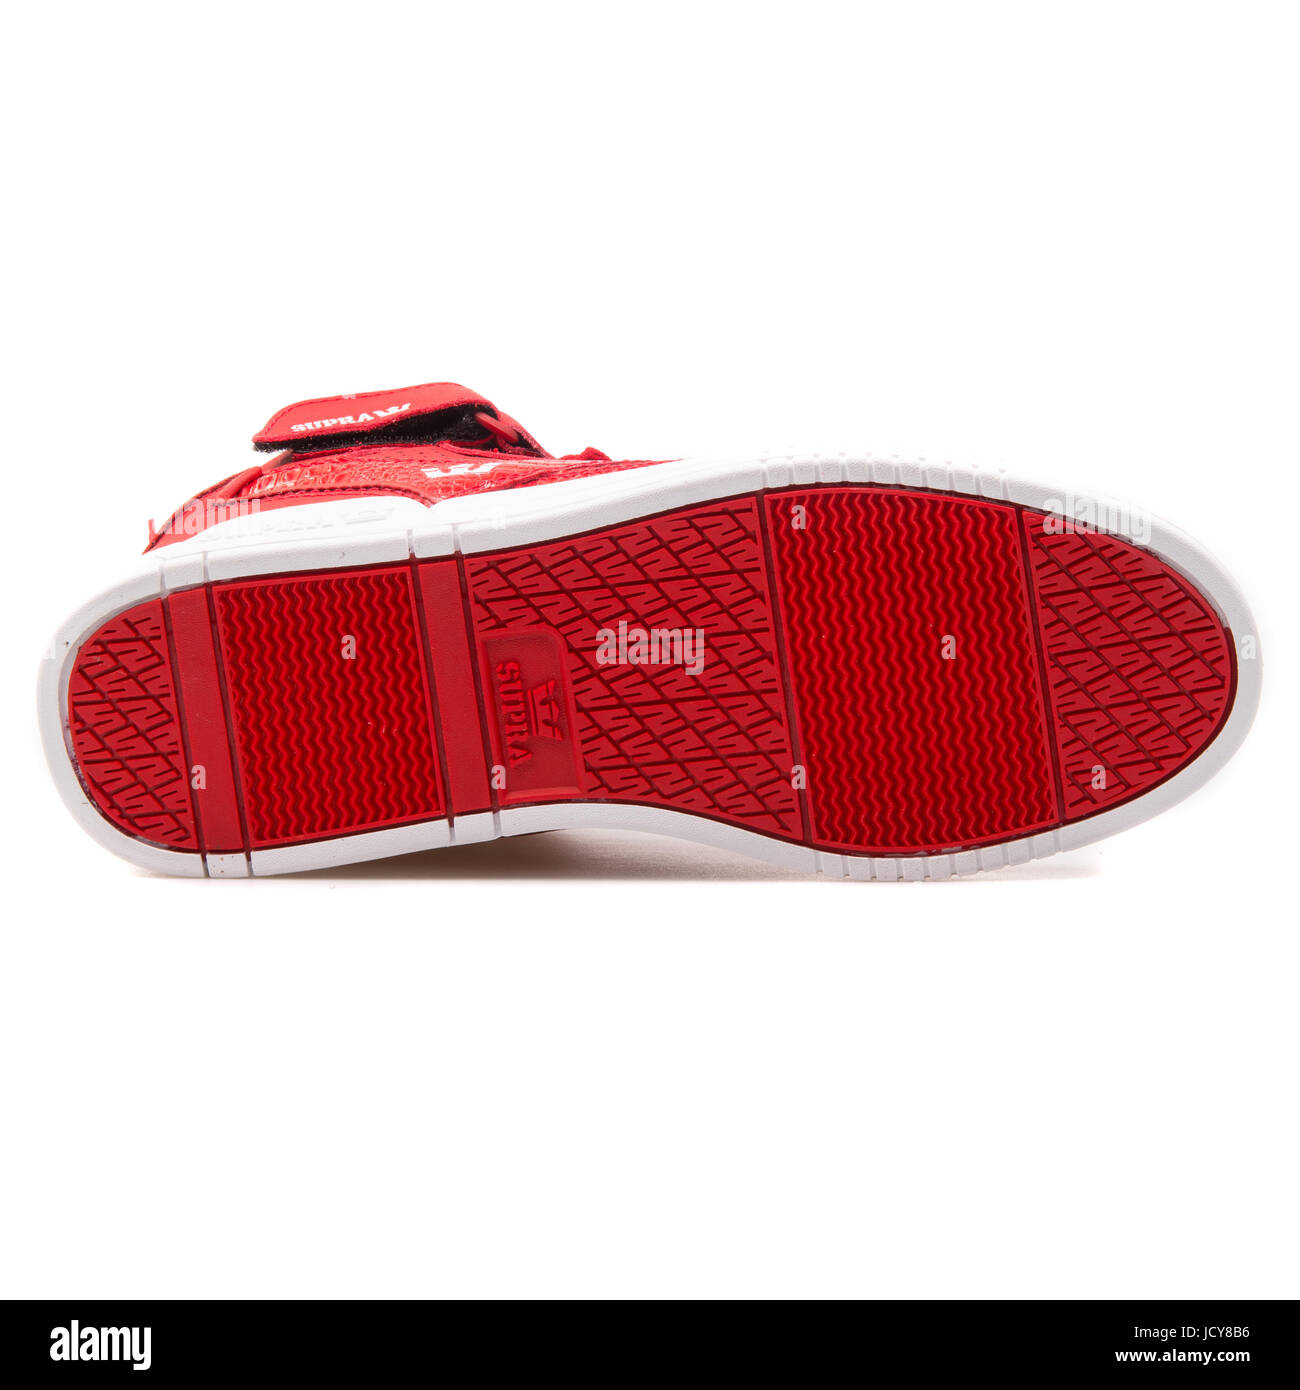 a88972912e ... store supra bleeker cardinal red and white mens sports shoes s02108  ca853 4bbaf